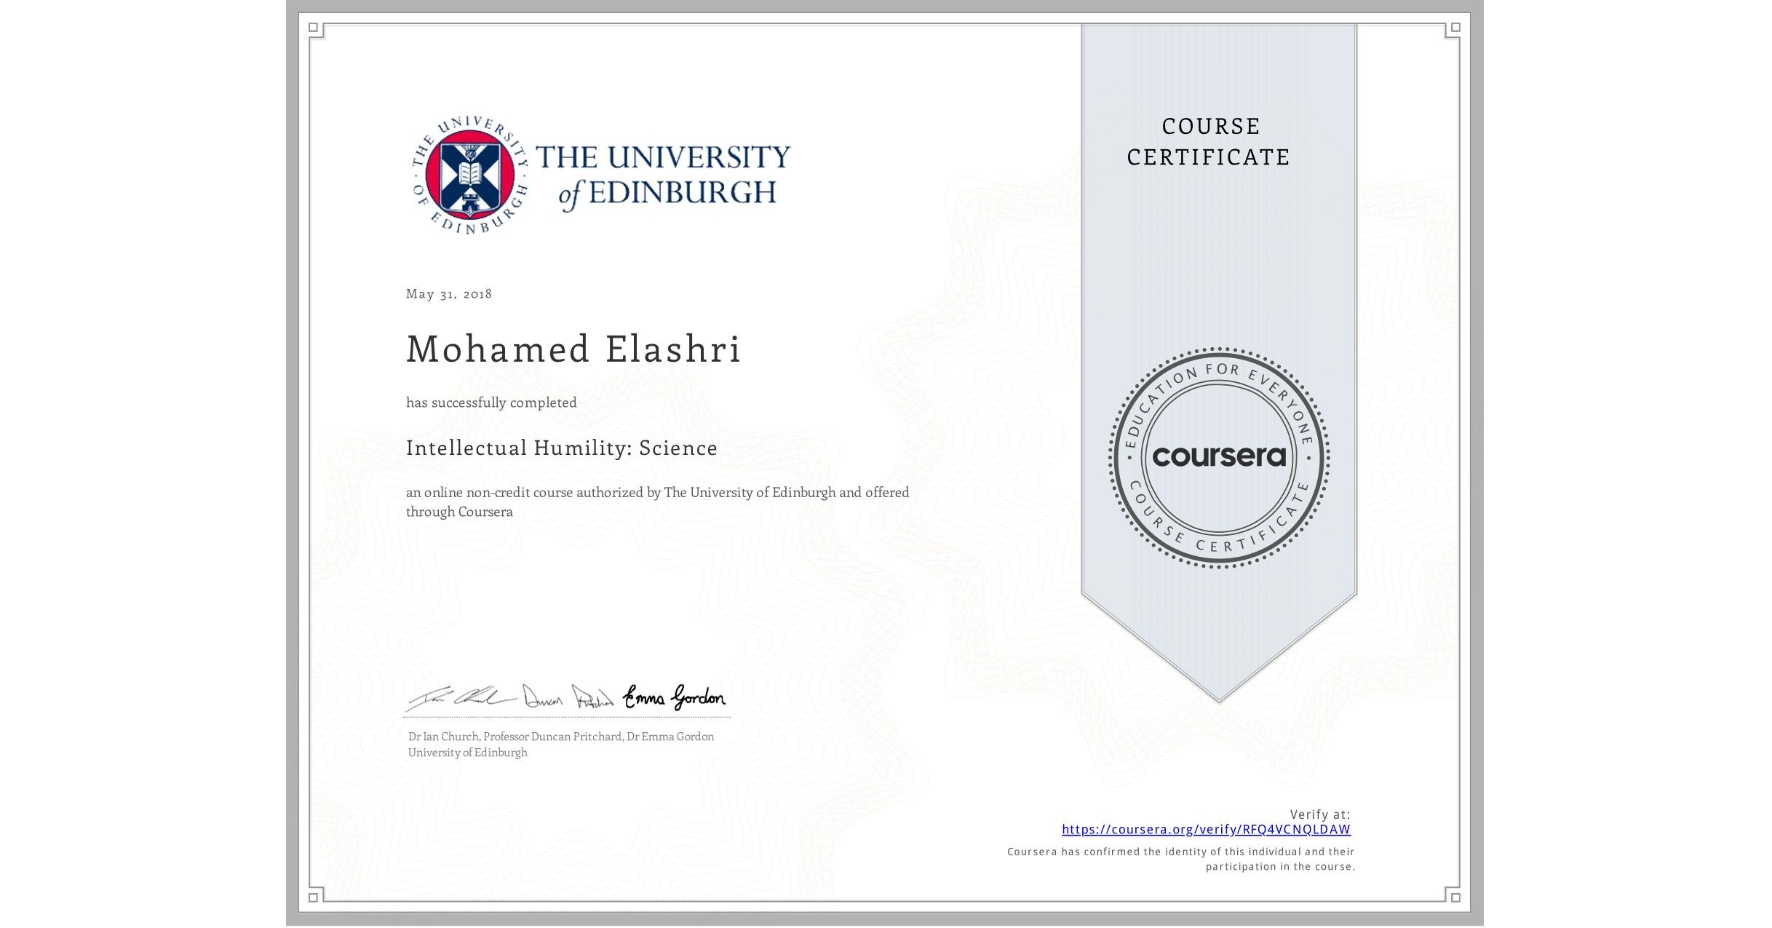 View certificate for Mohamed Elashri, Intellectual Humility: Science, an online non-credit course authorized by The University of Edinburgh and offered through Coursera